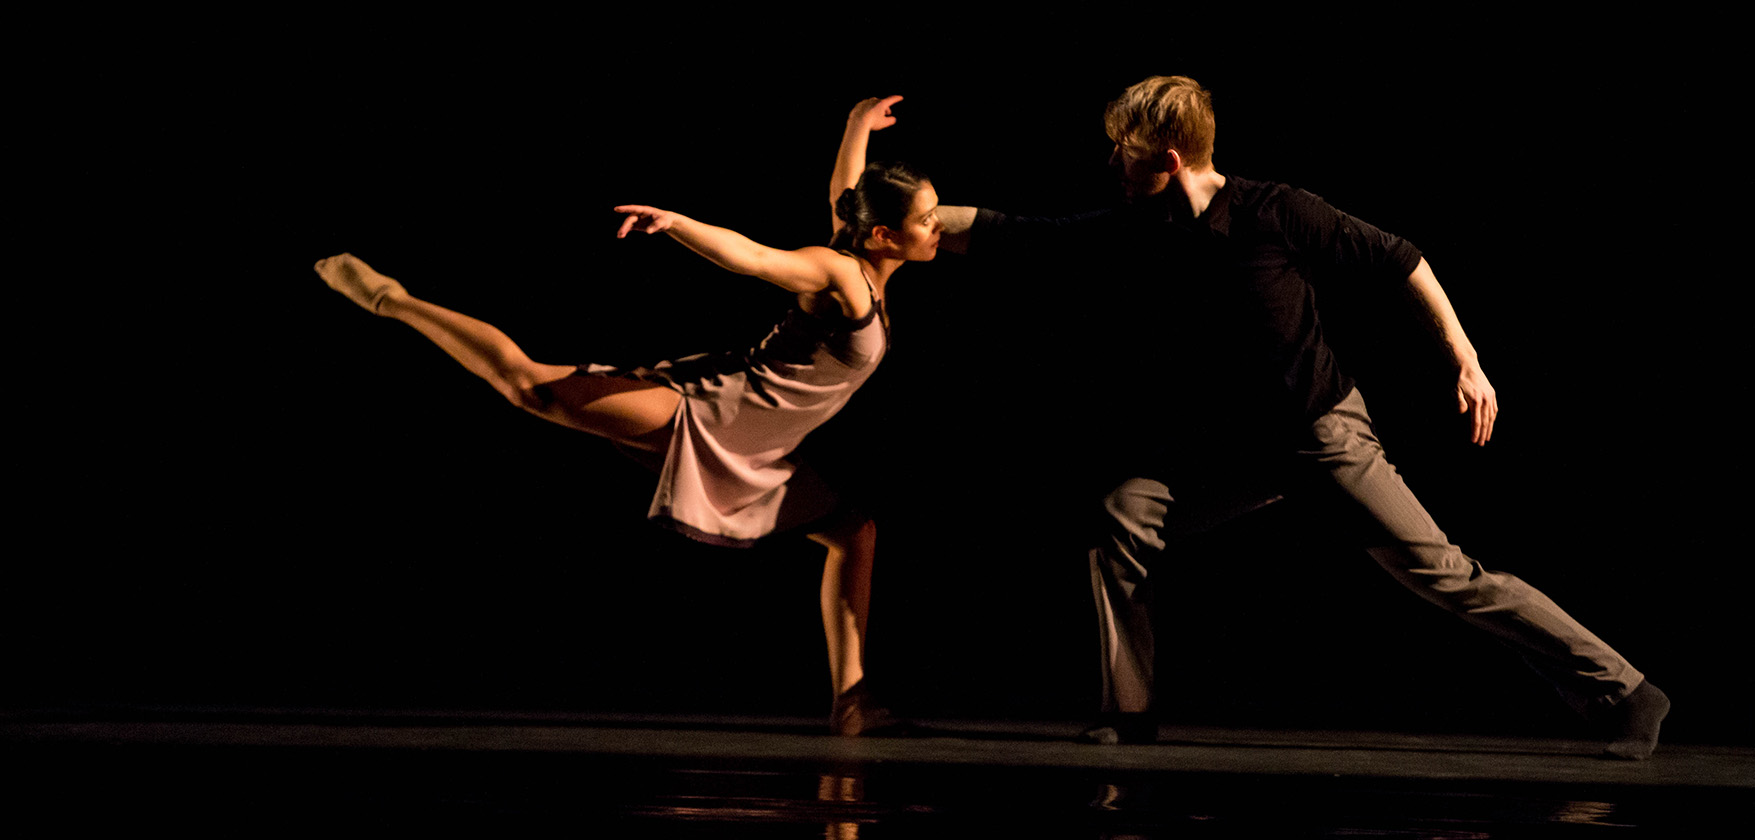 Hubbard Street Dance Chicago dancers Alicia Delgadillo and Elliot Hammans in Lickety-Split. Photo by Cheryl Mann